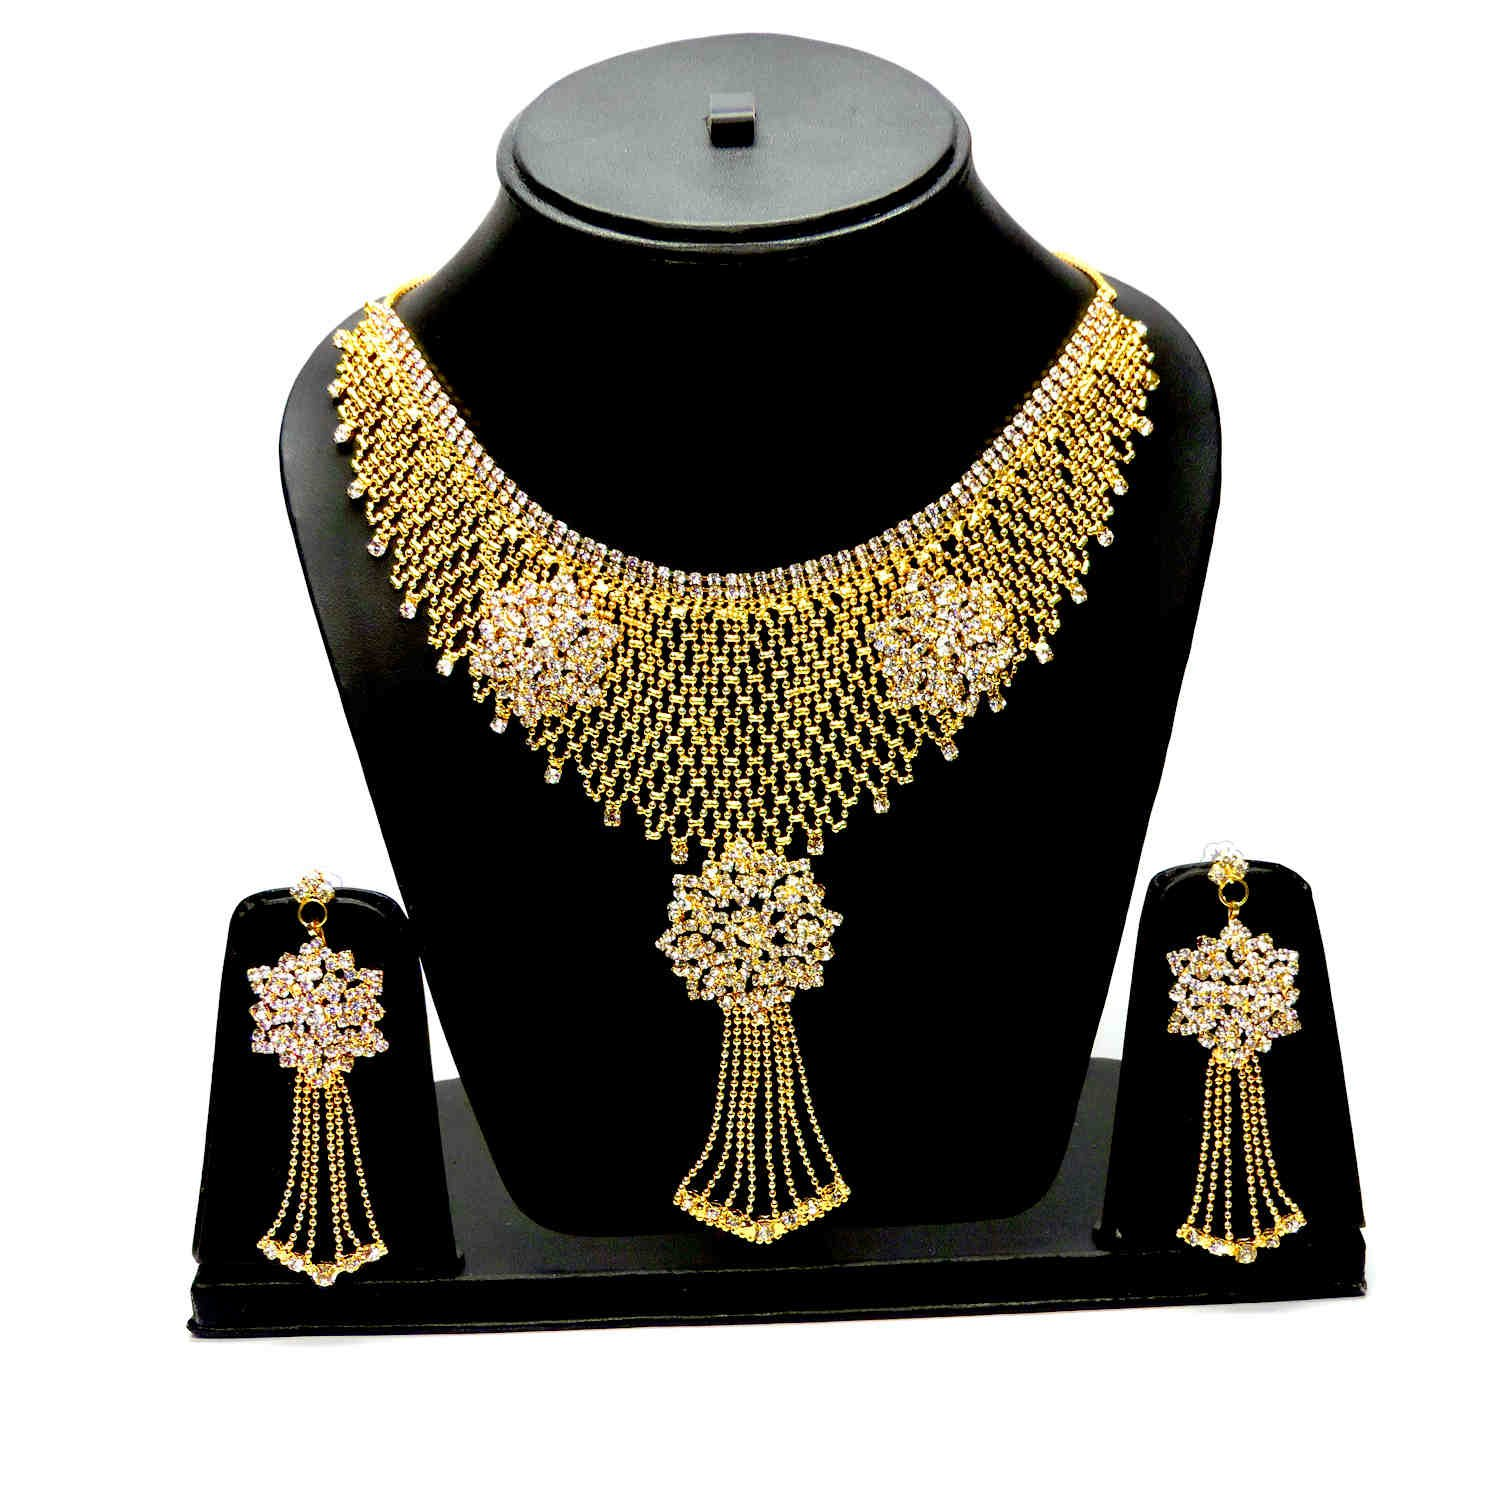 Buy Eshopitude Cz American Diamond Gold Plated Necklace & Earrings